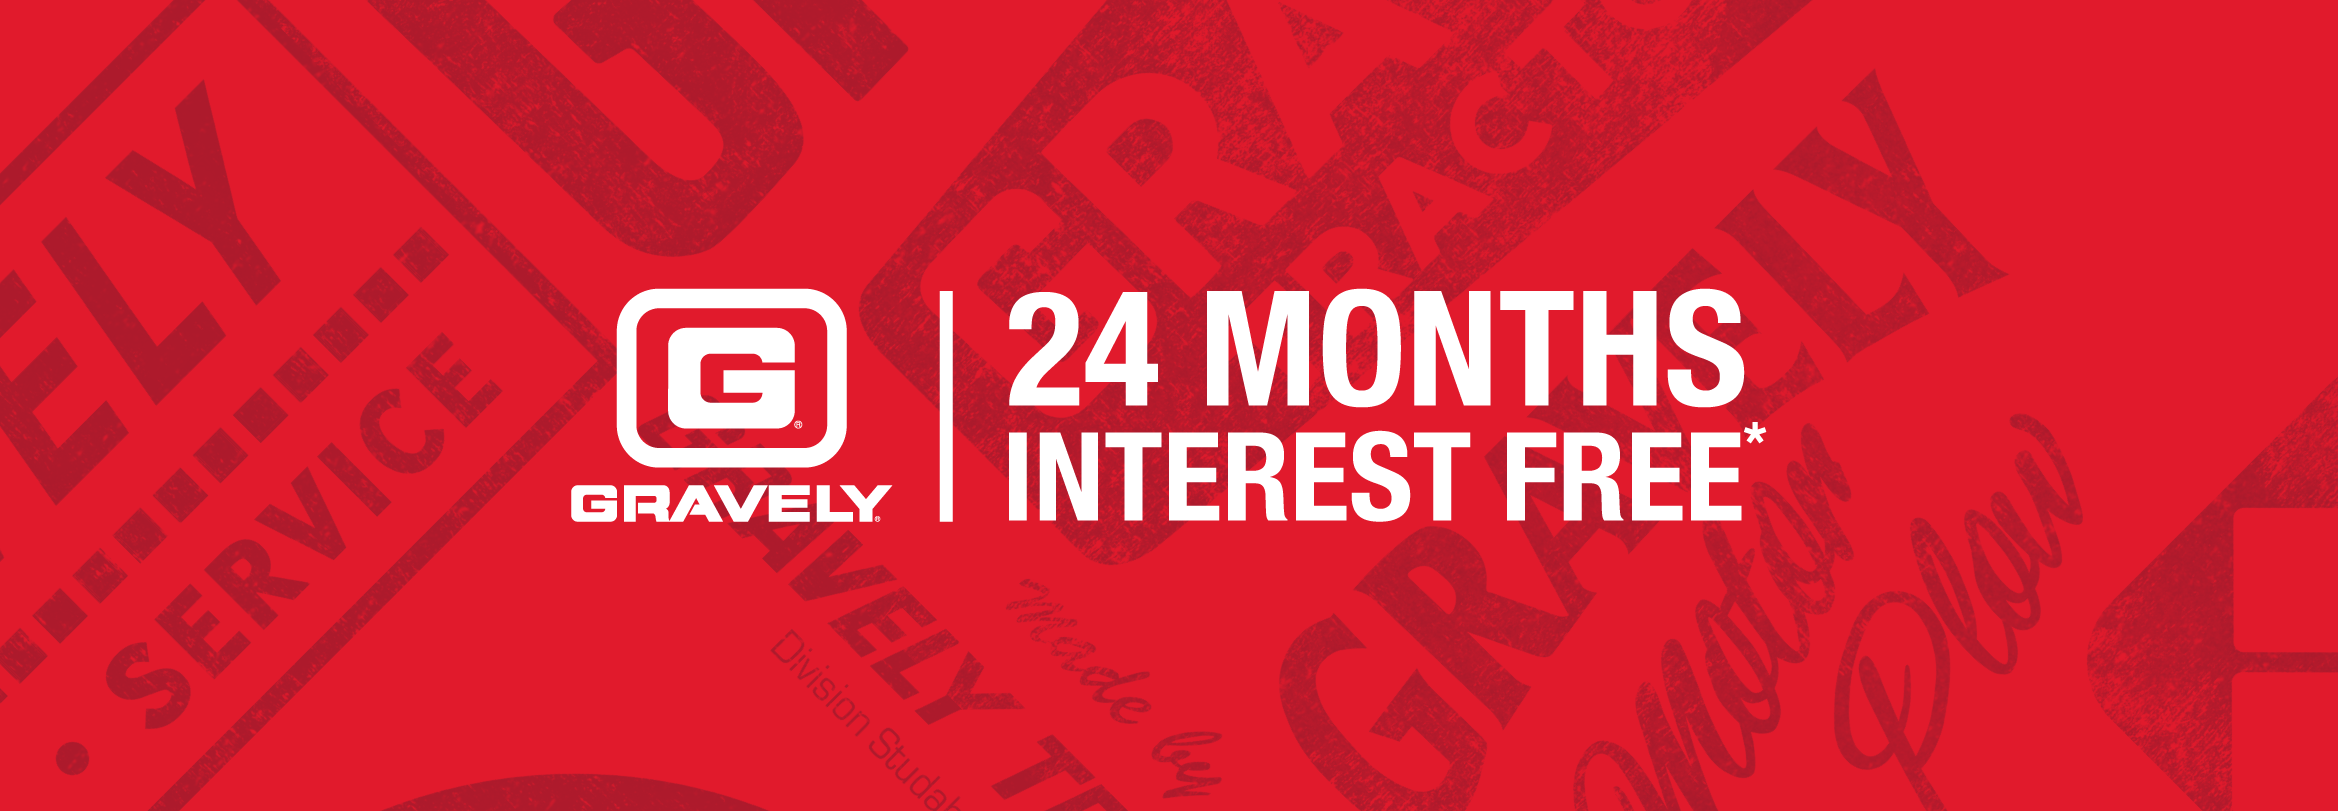 gravely-24-months-interest-free